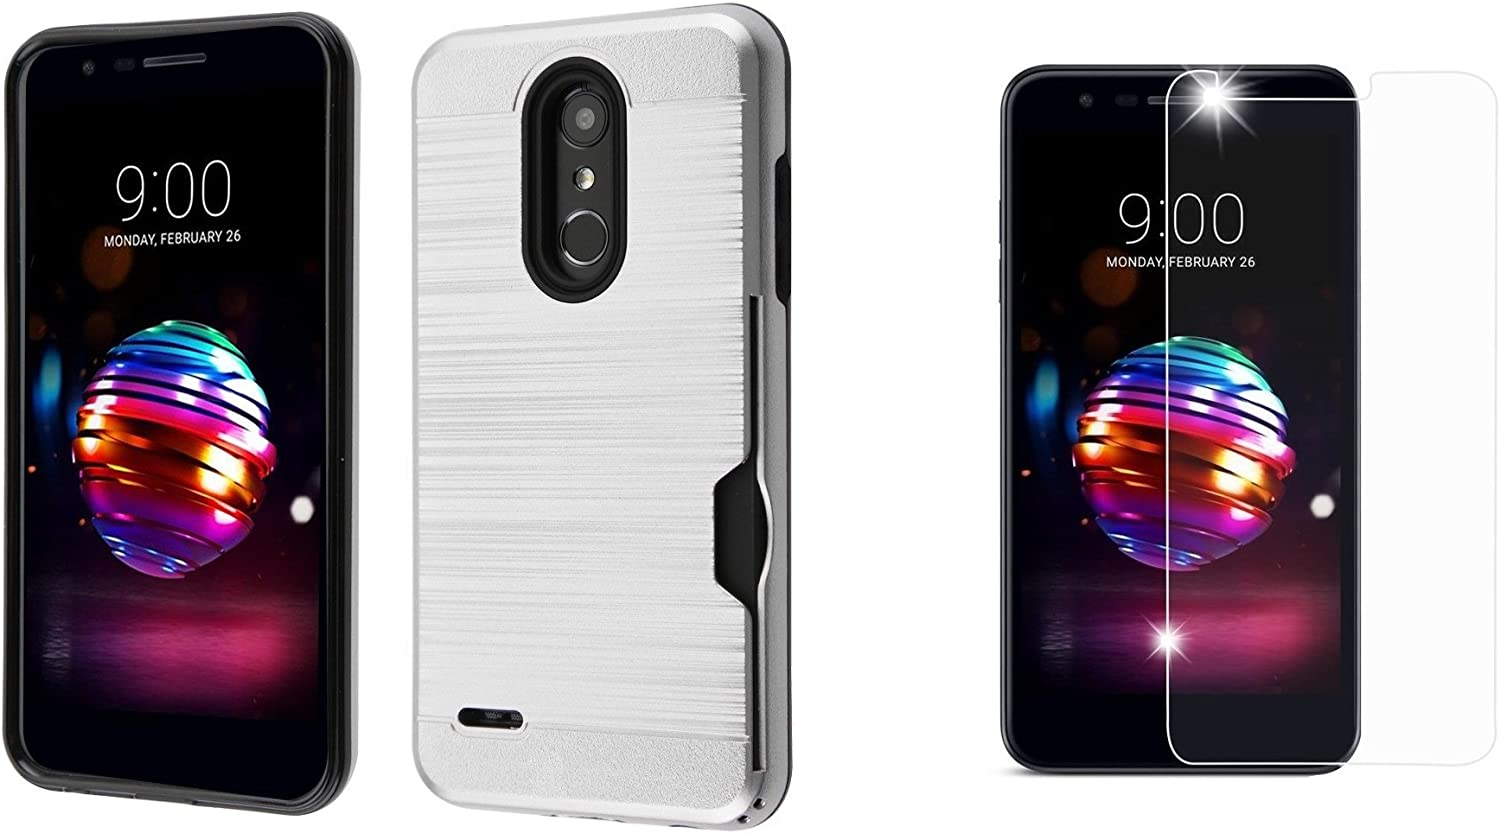 Silver Phoenix Plus Bemz Slim Shockproof Card Slot Case for LG K30 Premier Pro 4G LTE Harmony 2 with Tempered Glass Screen Protector